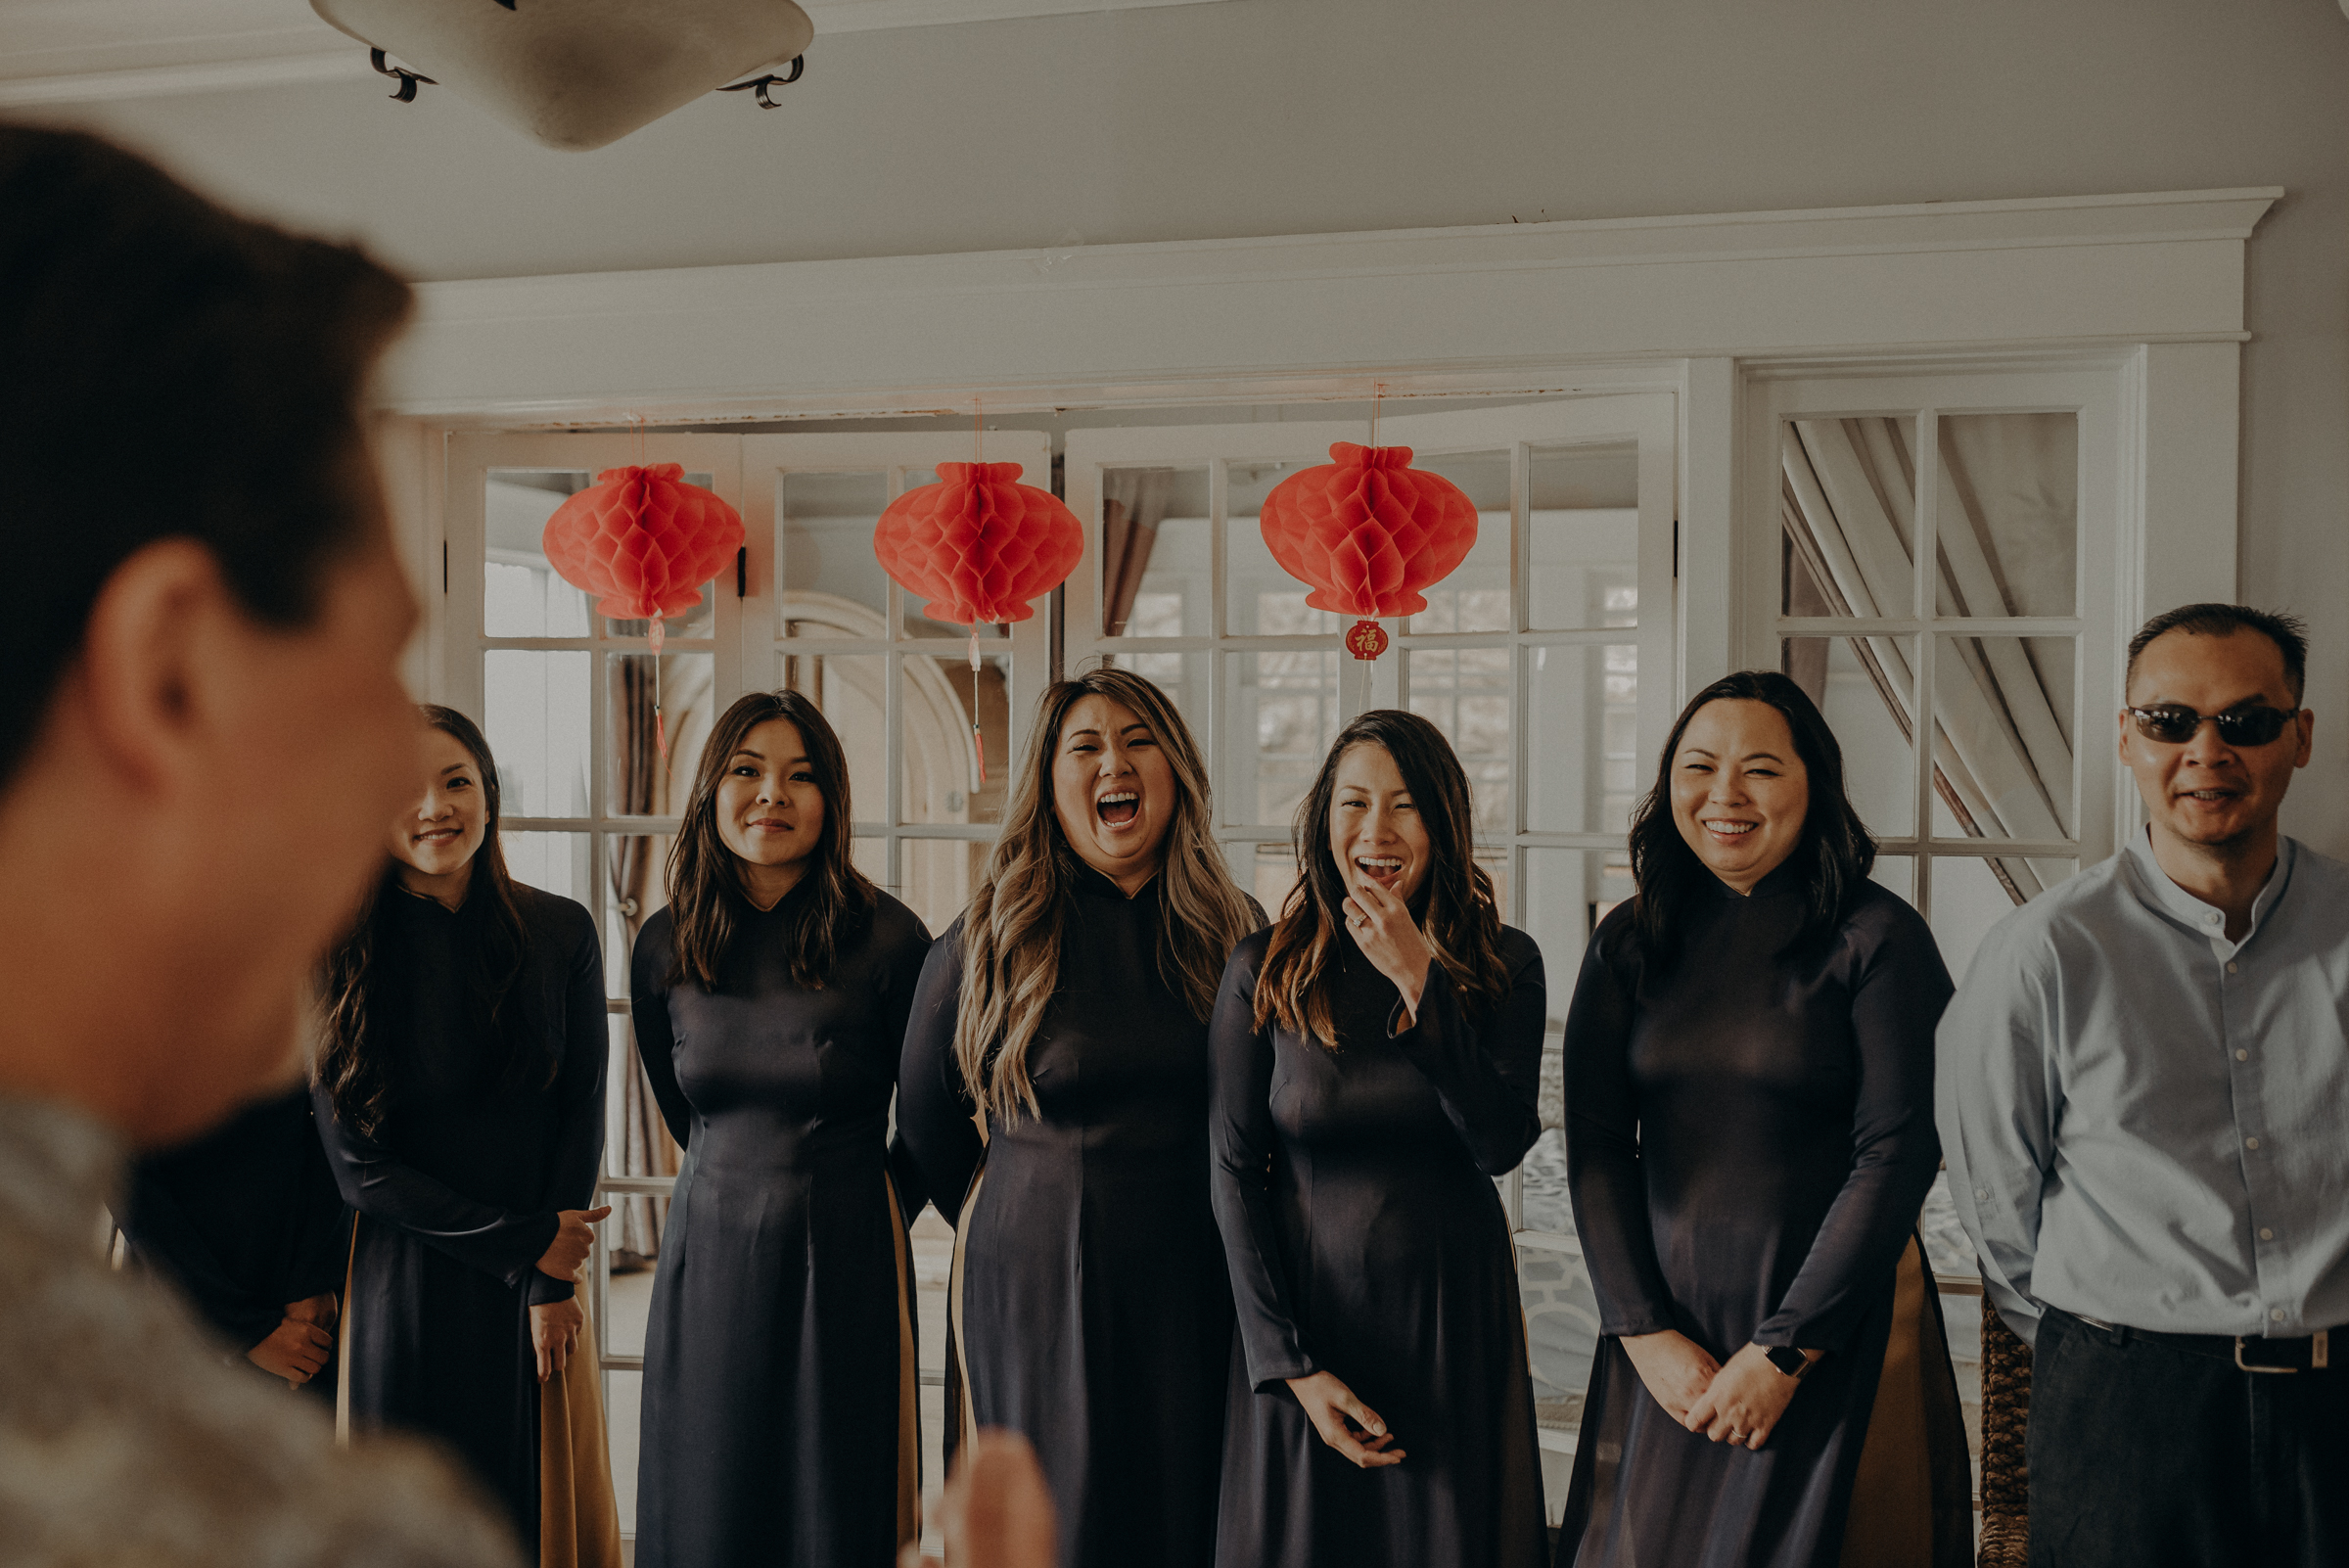 Los Angeles Wedding Photographer - IsaiahAndTaylor.com - The Ebell of Long Beach Wedding - Traditional Vietnamese tea ceremony-053.jpg